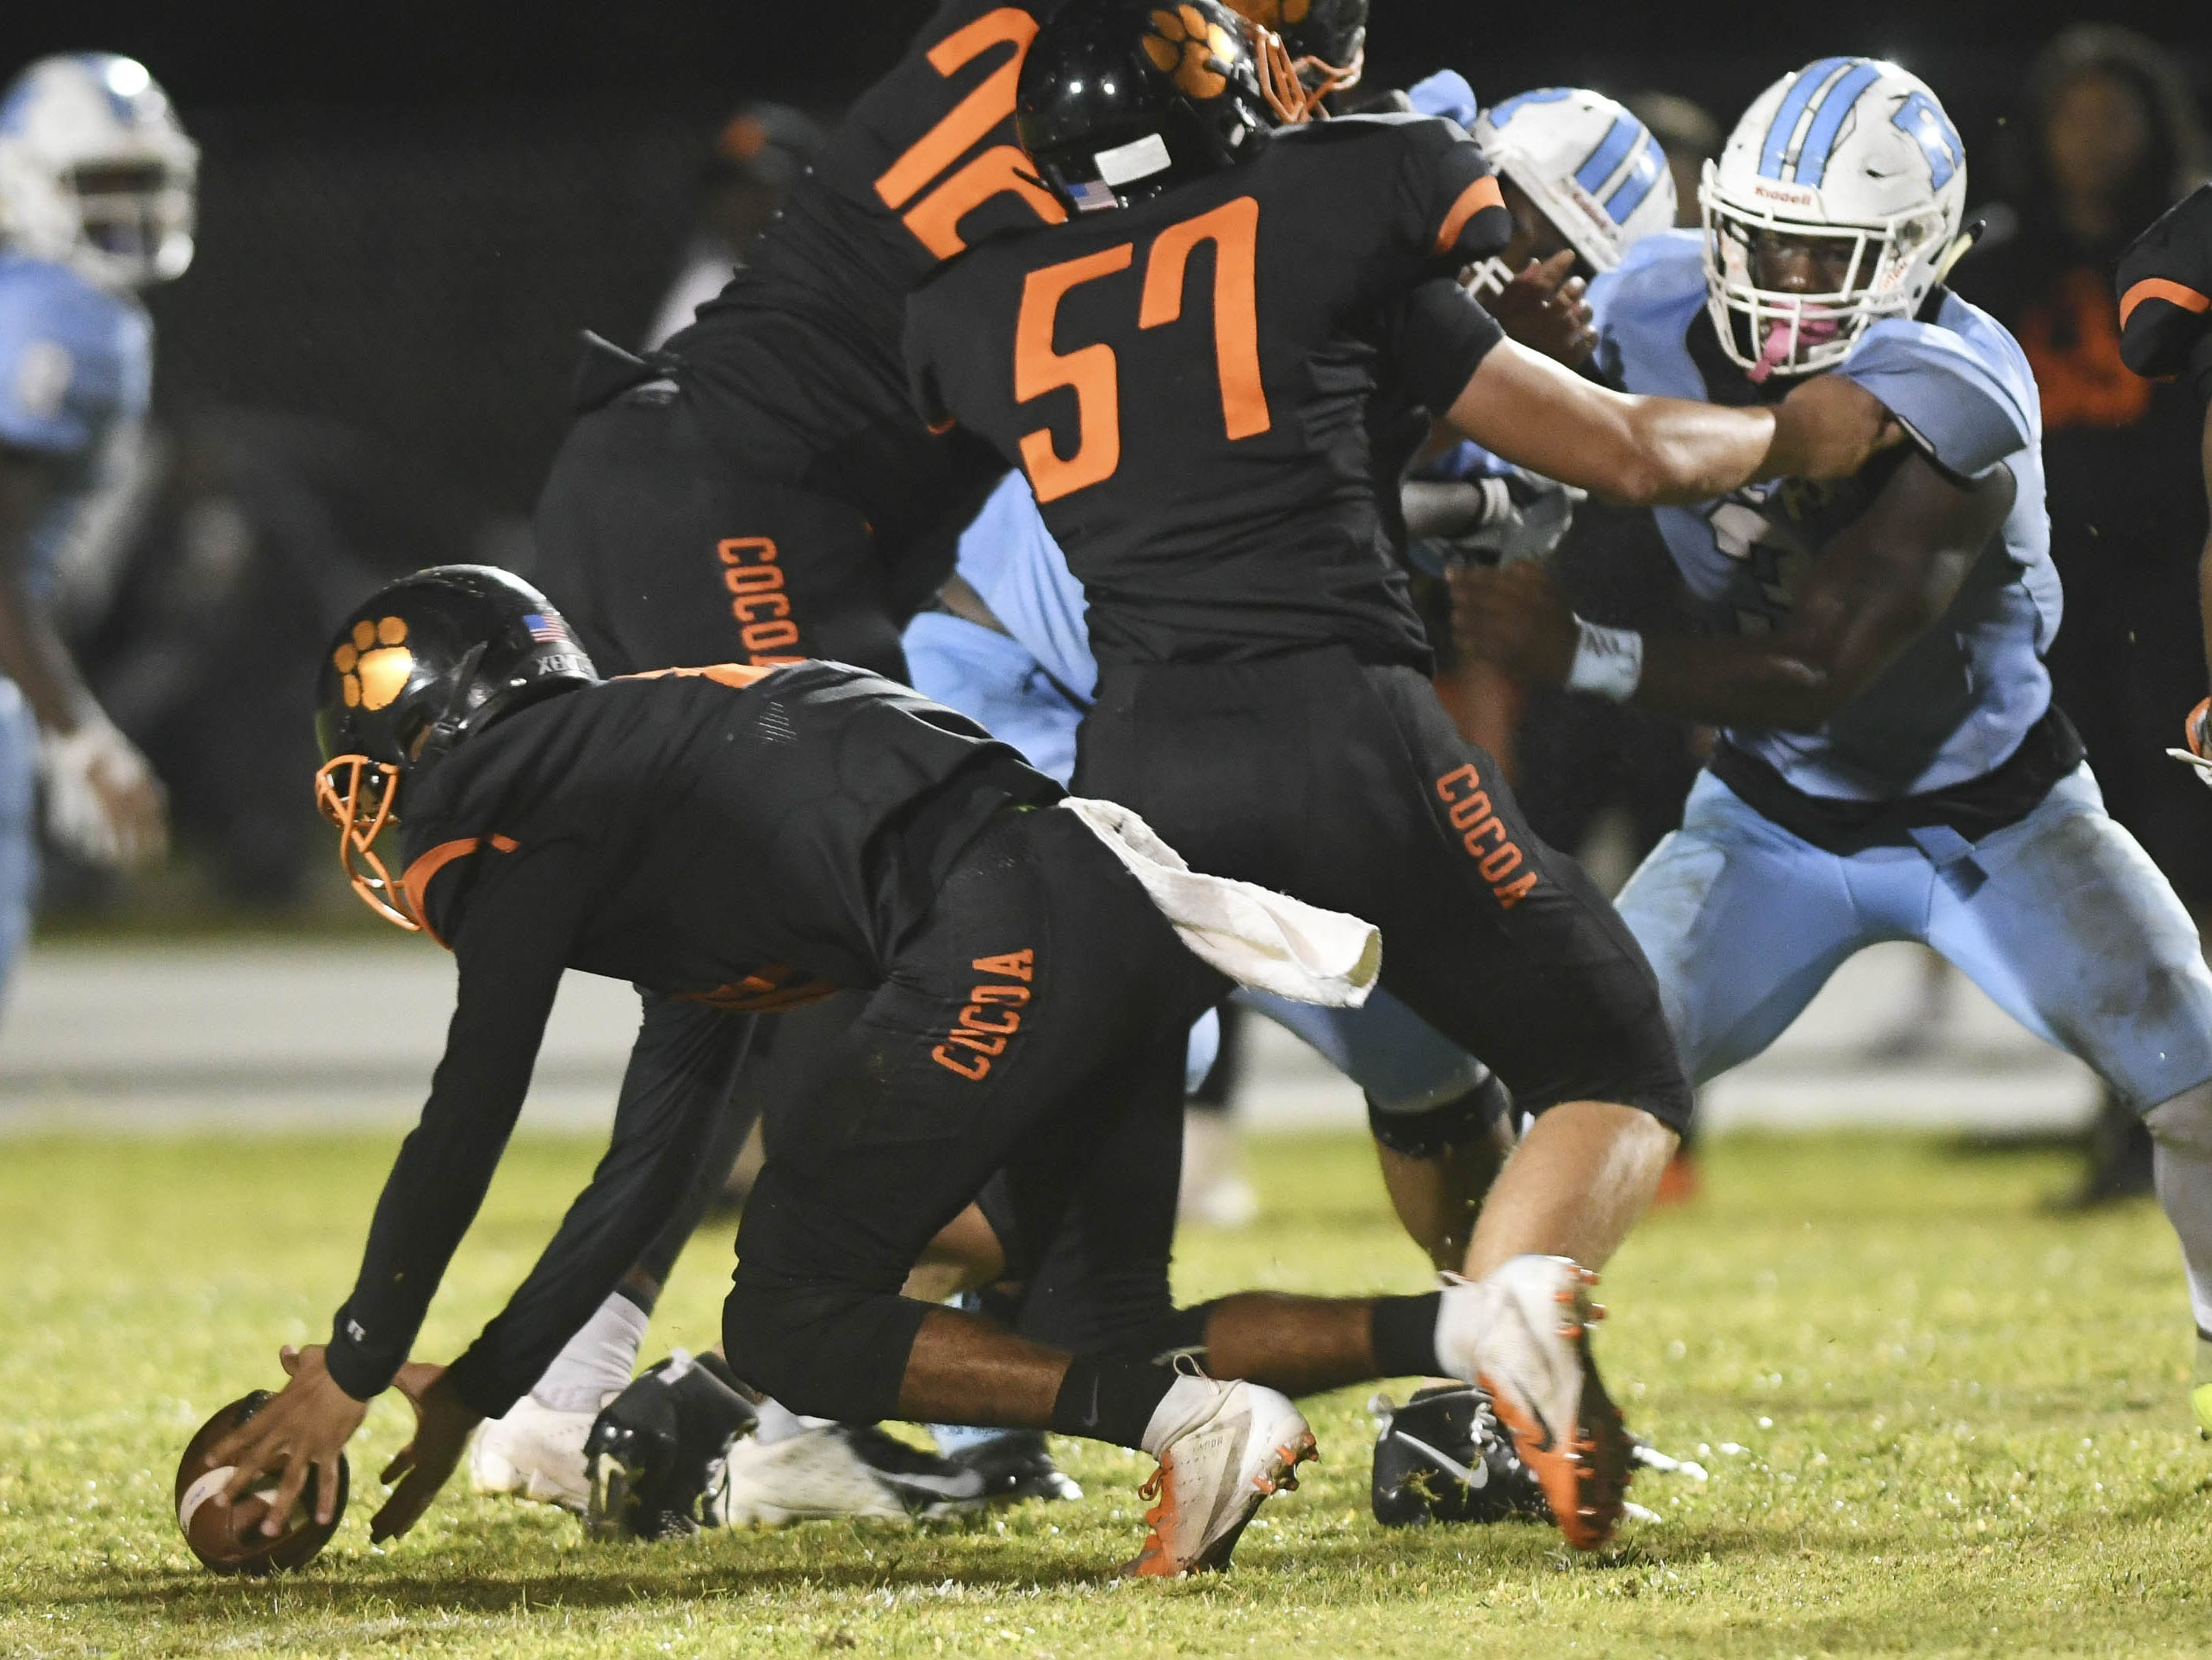 Cocoa QB Diego Arroyo picks up a fumble during Friday's game.